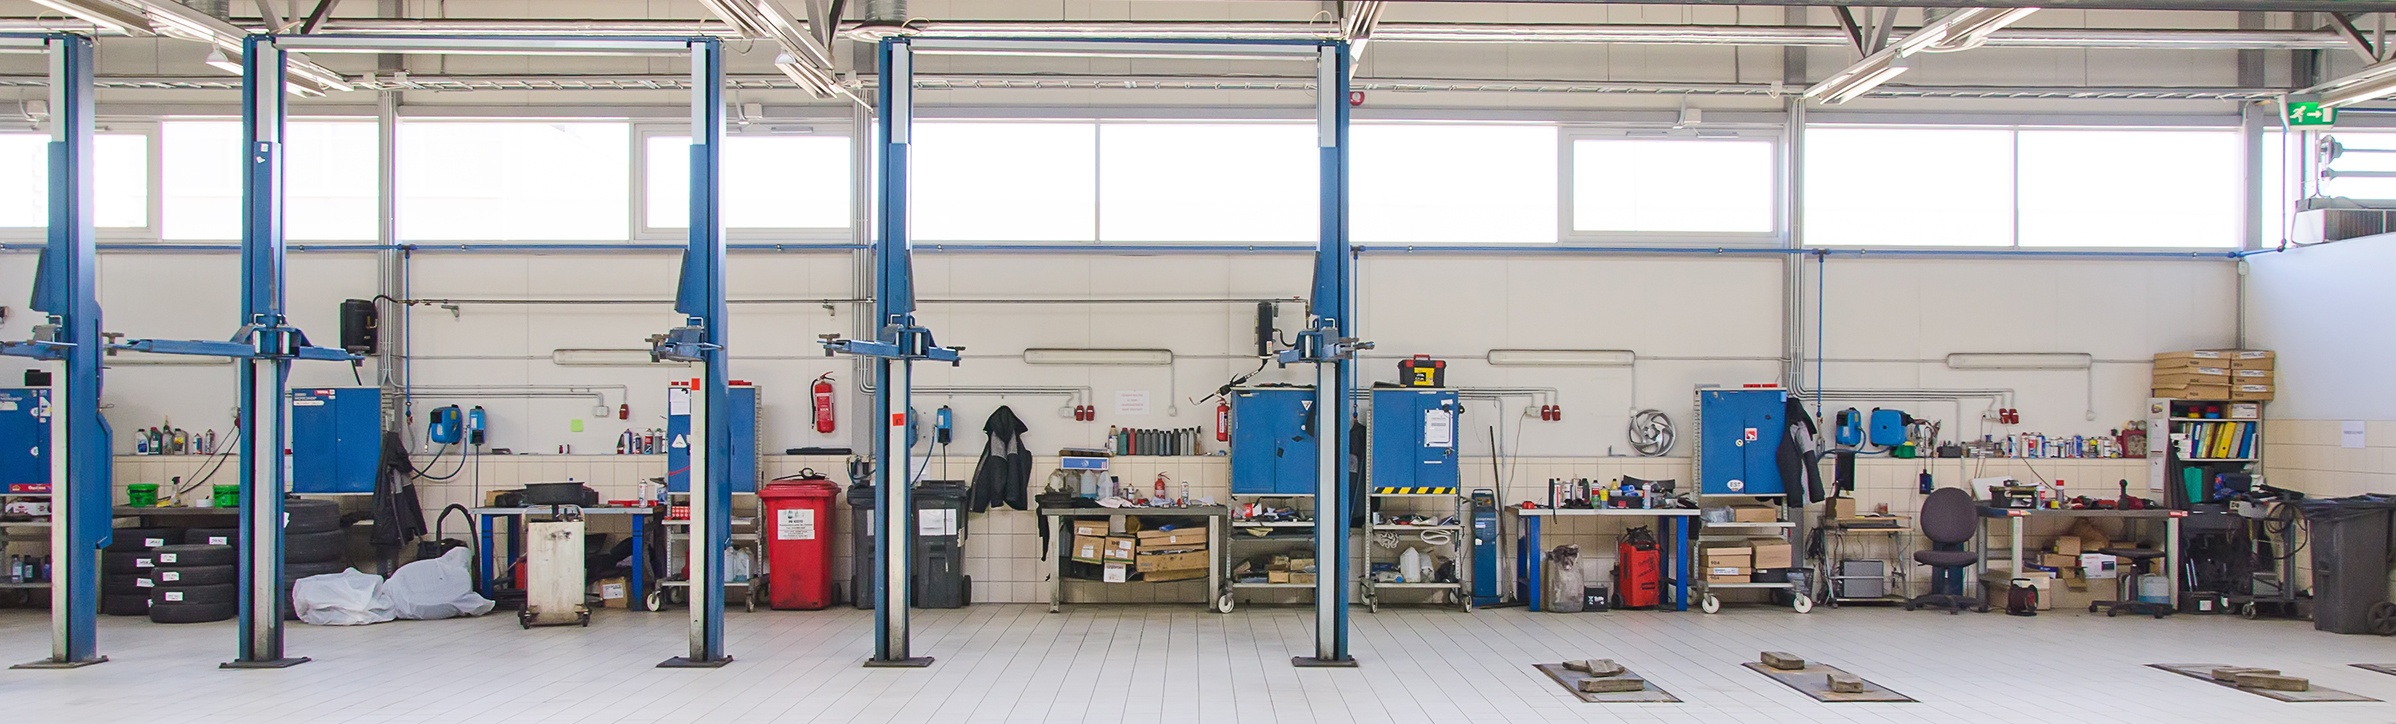 Replacement Parts for Automotive Lifts